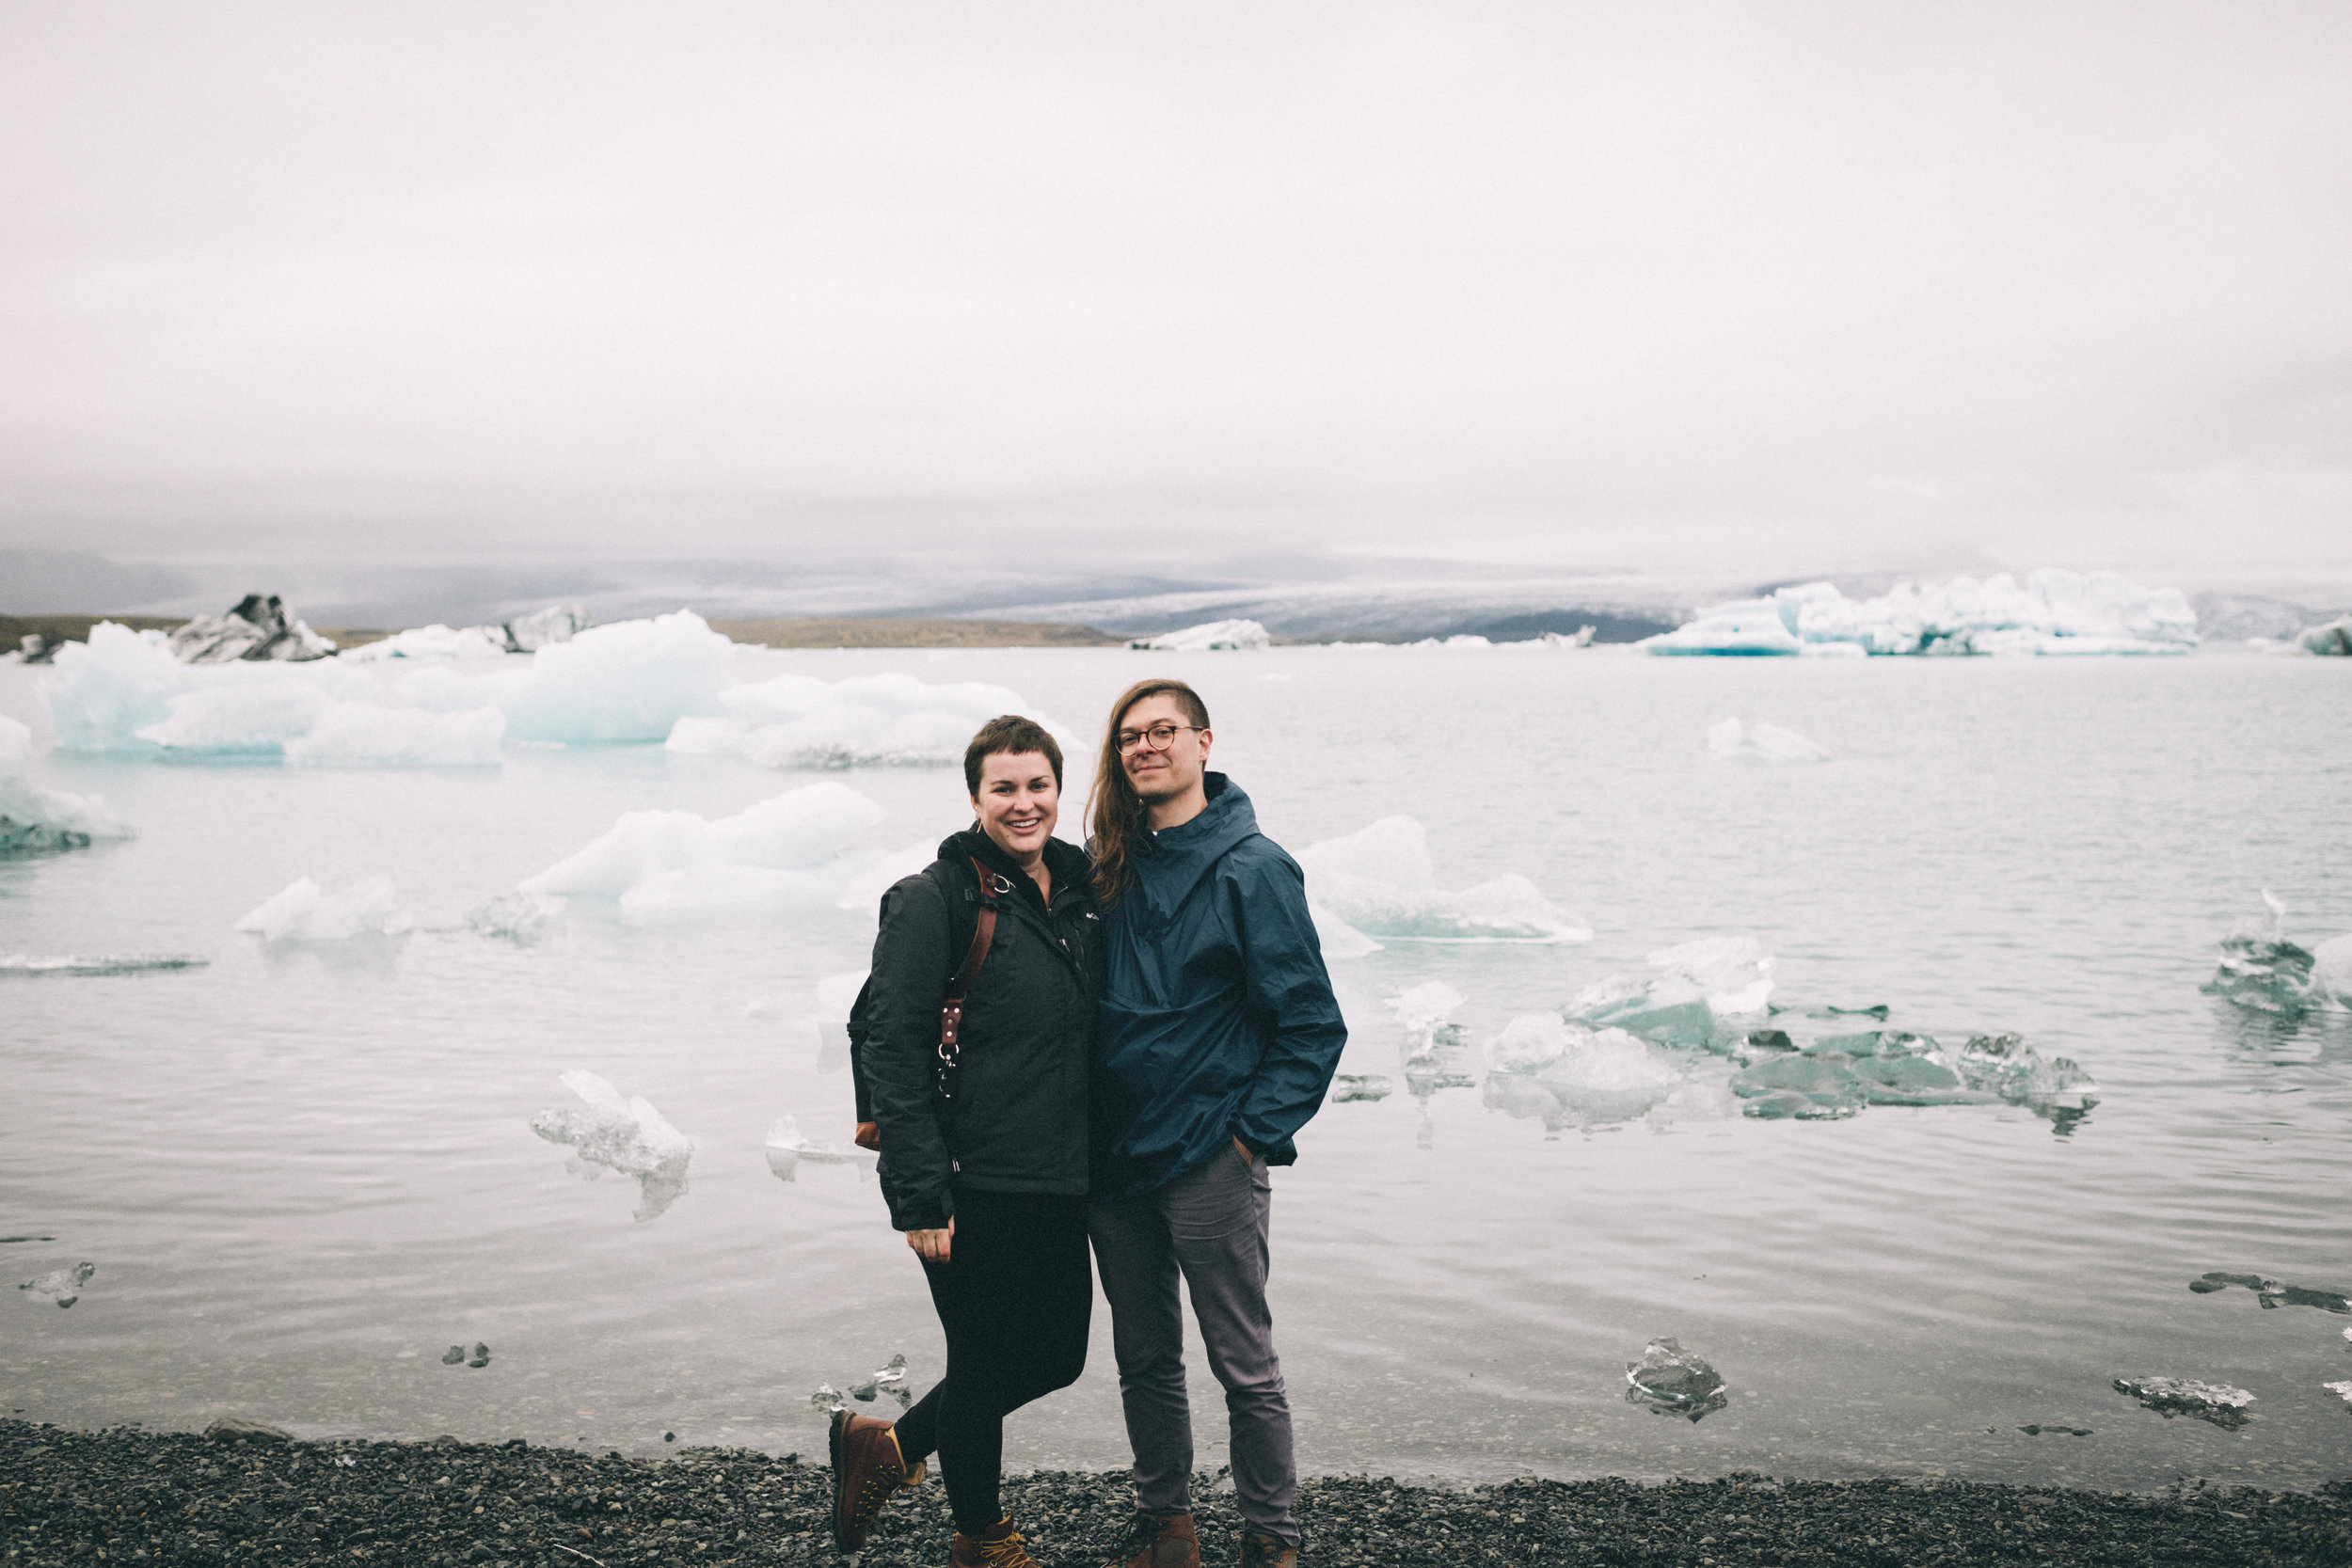 2018 // Jökulsárlón, Iceland with my spouse